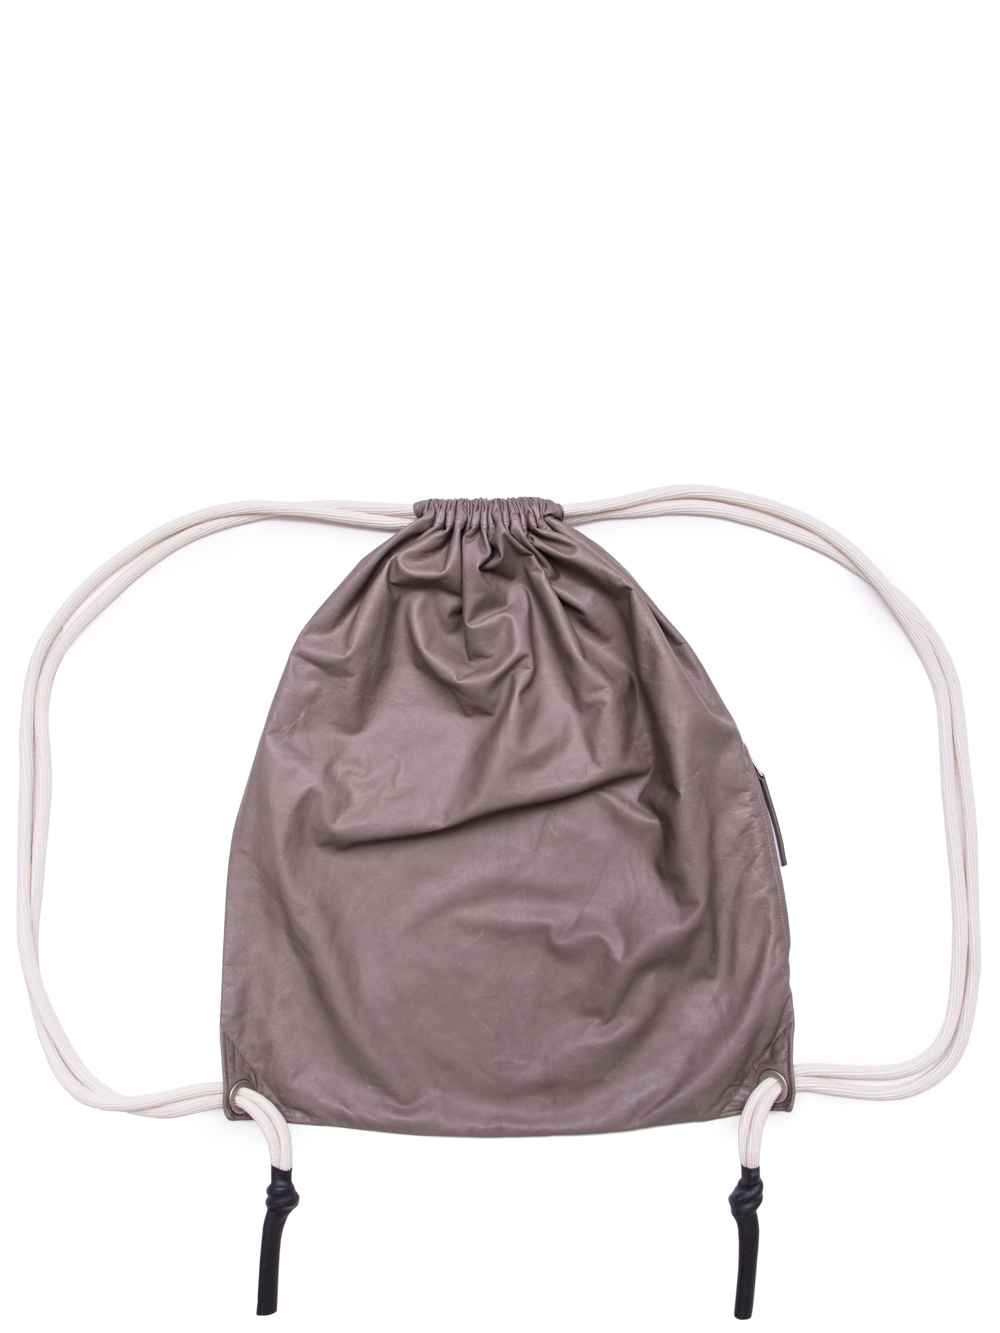 RICK OWENS SS19 BABEL LARGE DRAWSTRING BACKPACK IN DUST GREY BABY CALF LEATHER